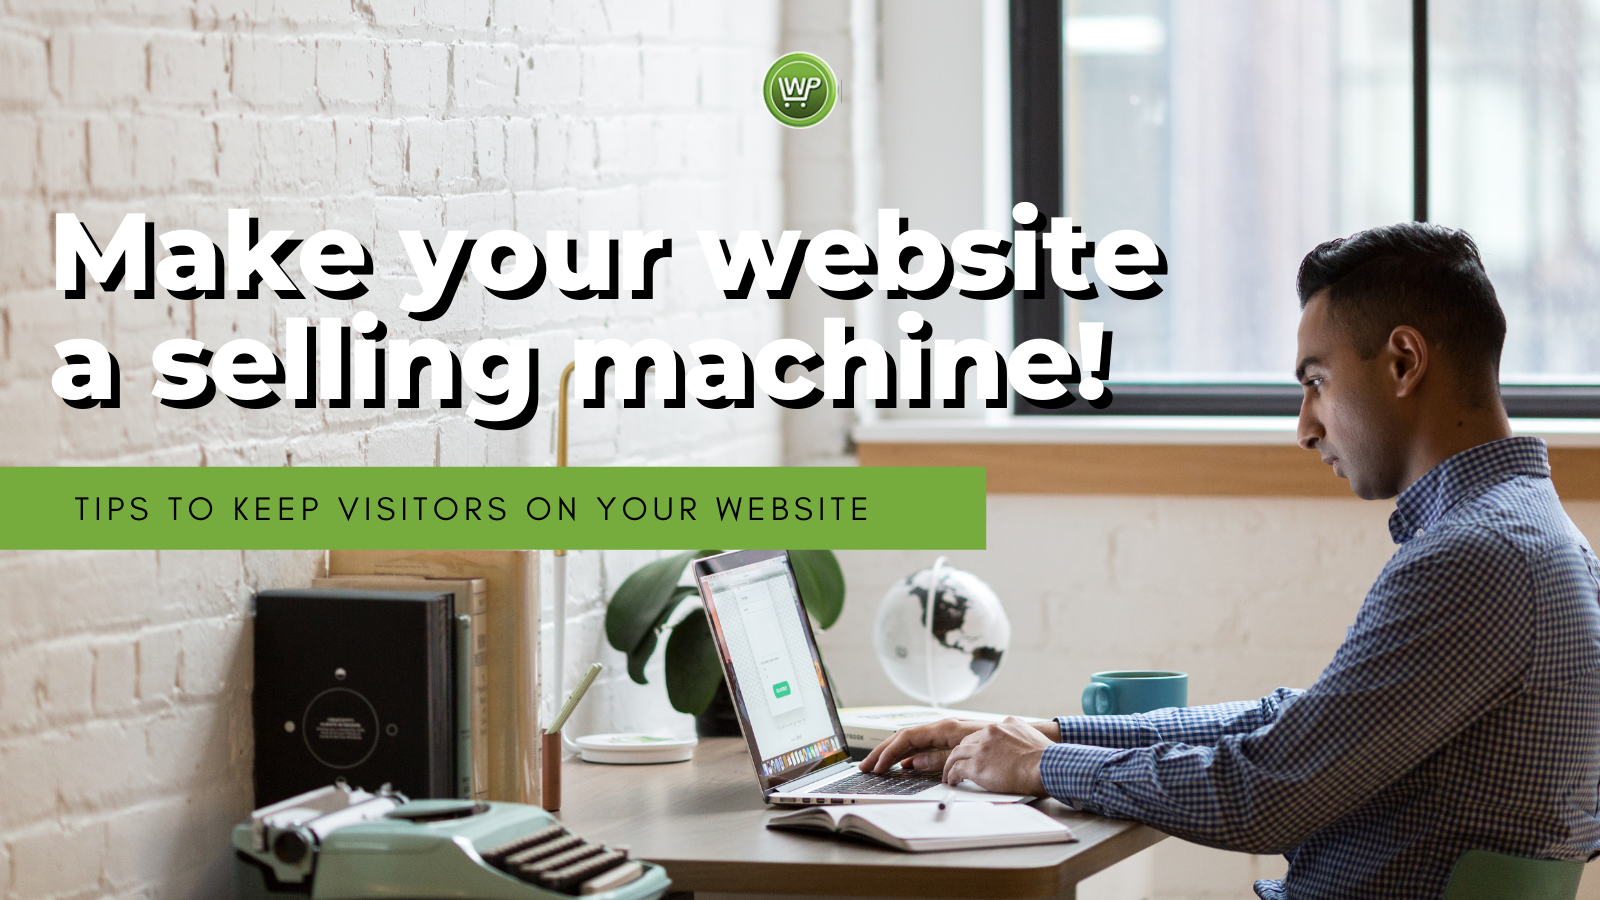 Make your website a selling machine